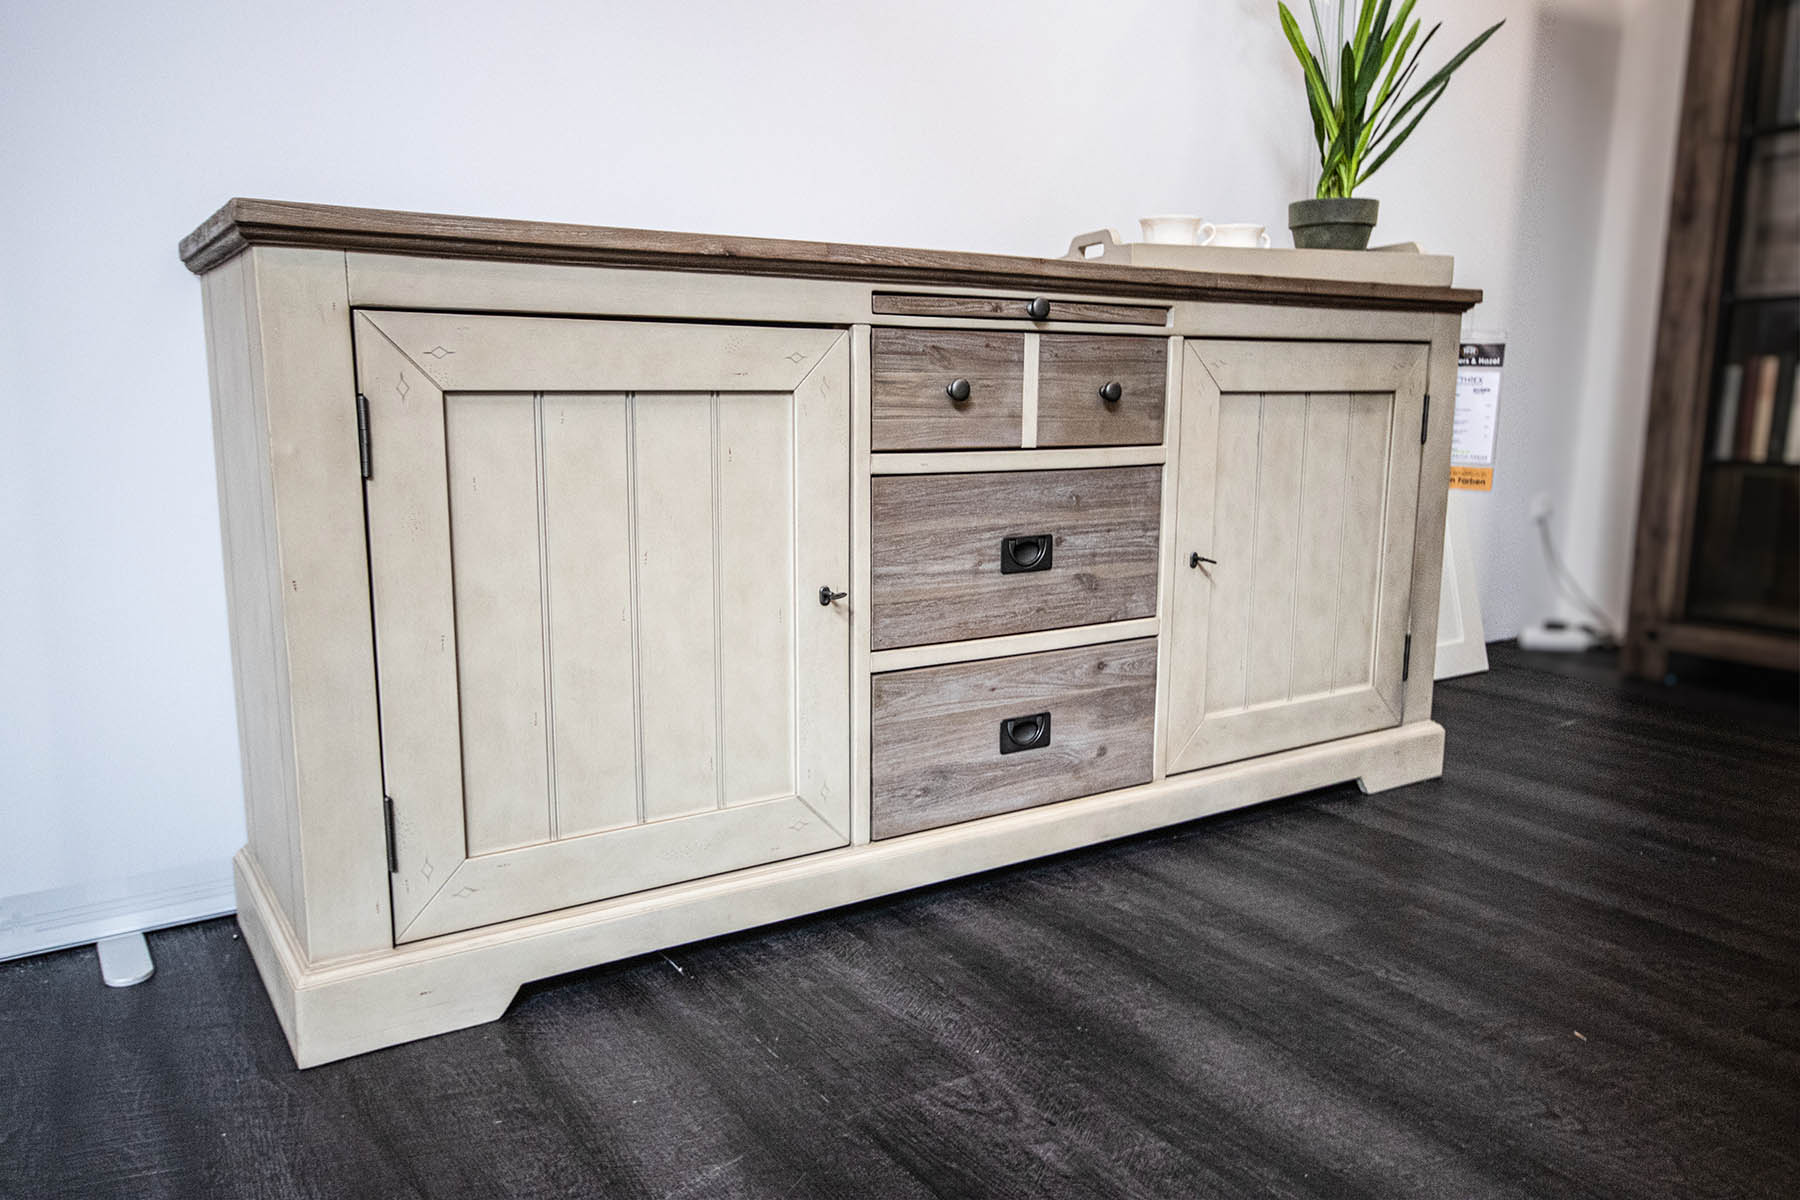 Couchtisch Le Port Sideboard Le Port | Interliving Thiex